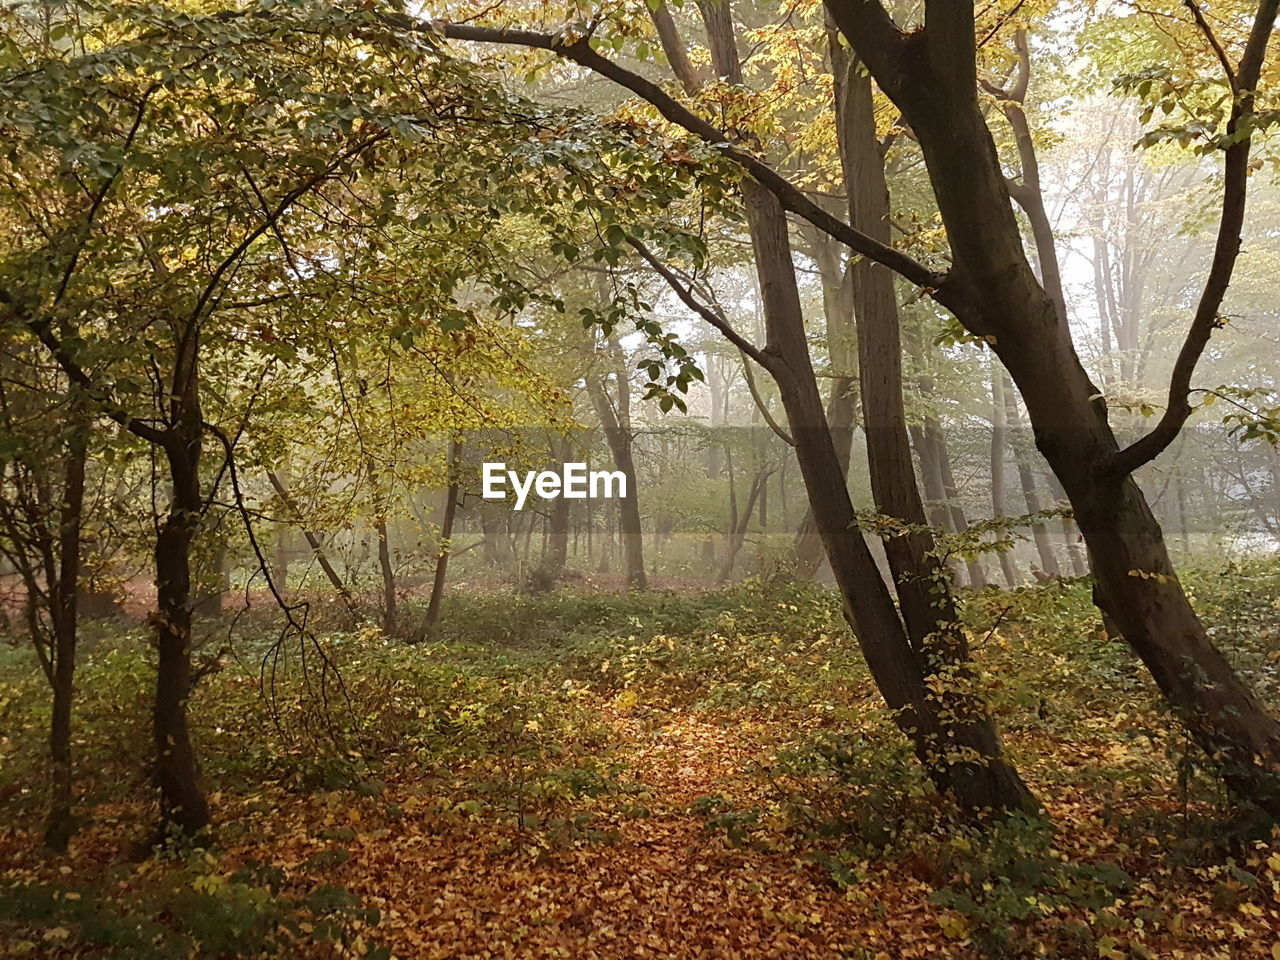 tree, autumn, nature, tranquil scene, beauty in nature, tranquility, scenics, branch, sunbeam, leaf, tree trunk, fog, landscape, sunlight, forest, change, outdoors, day, no people, growth, grass